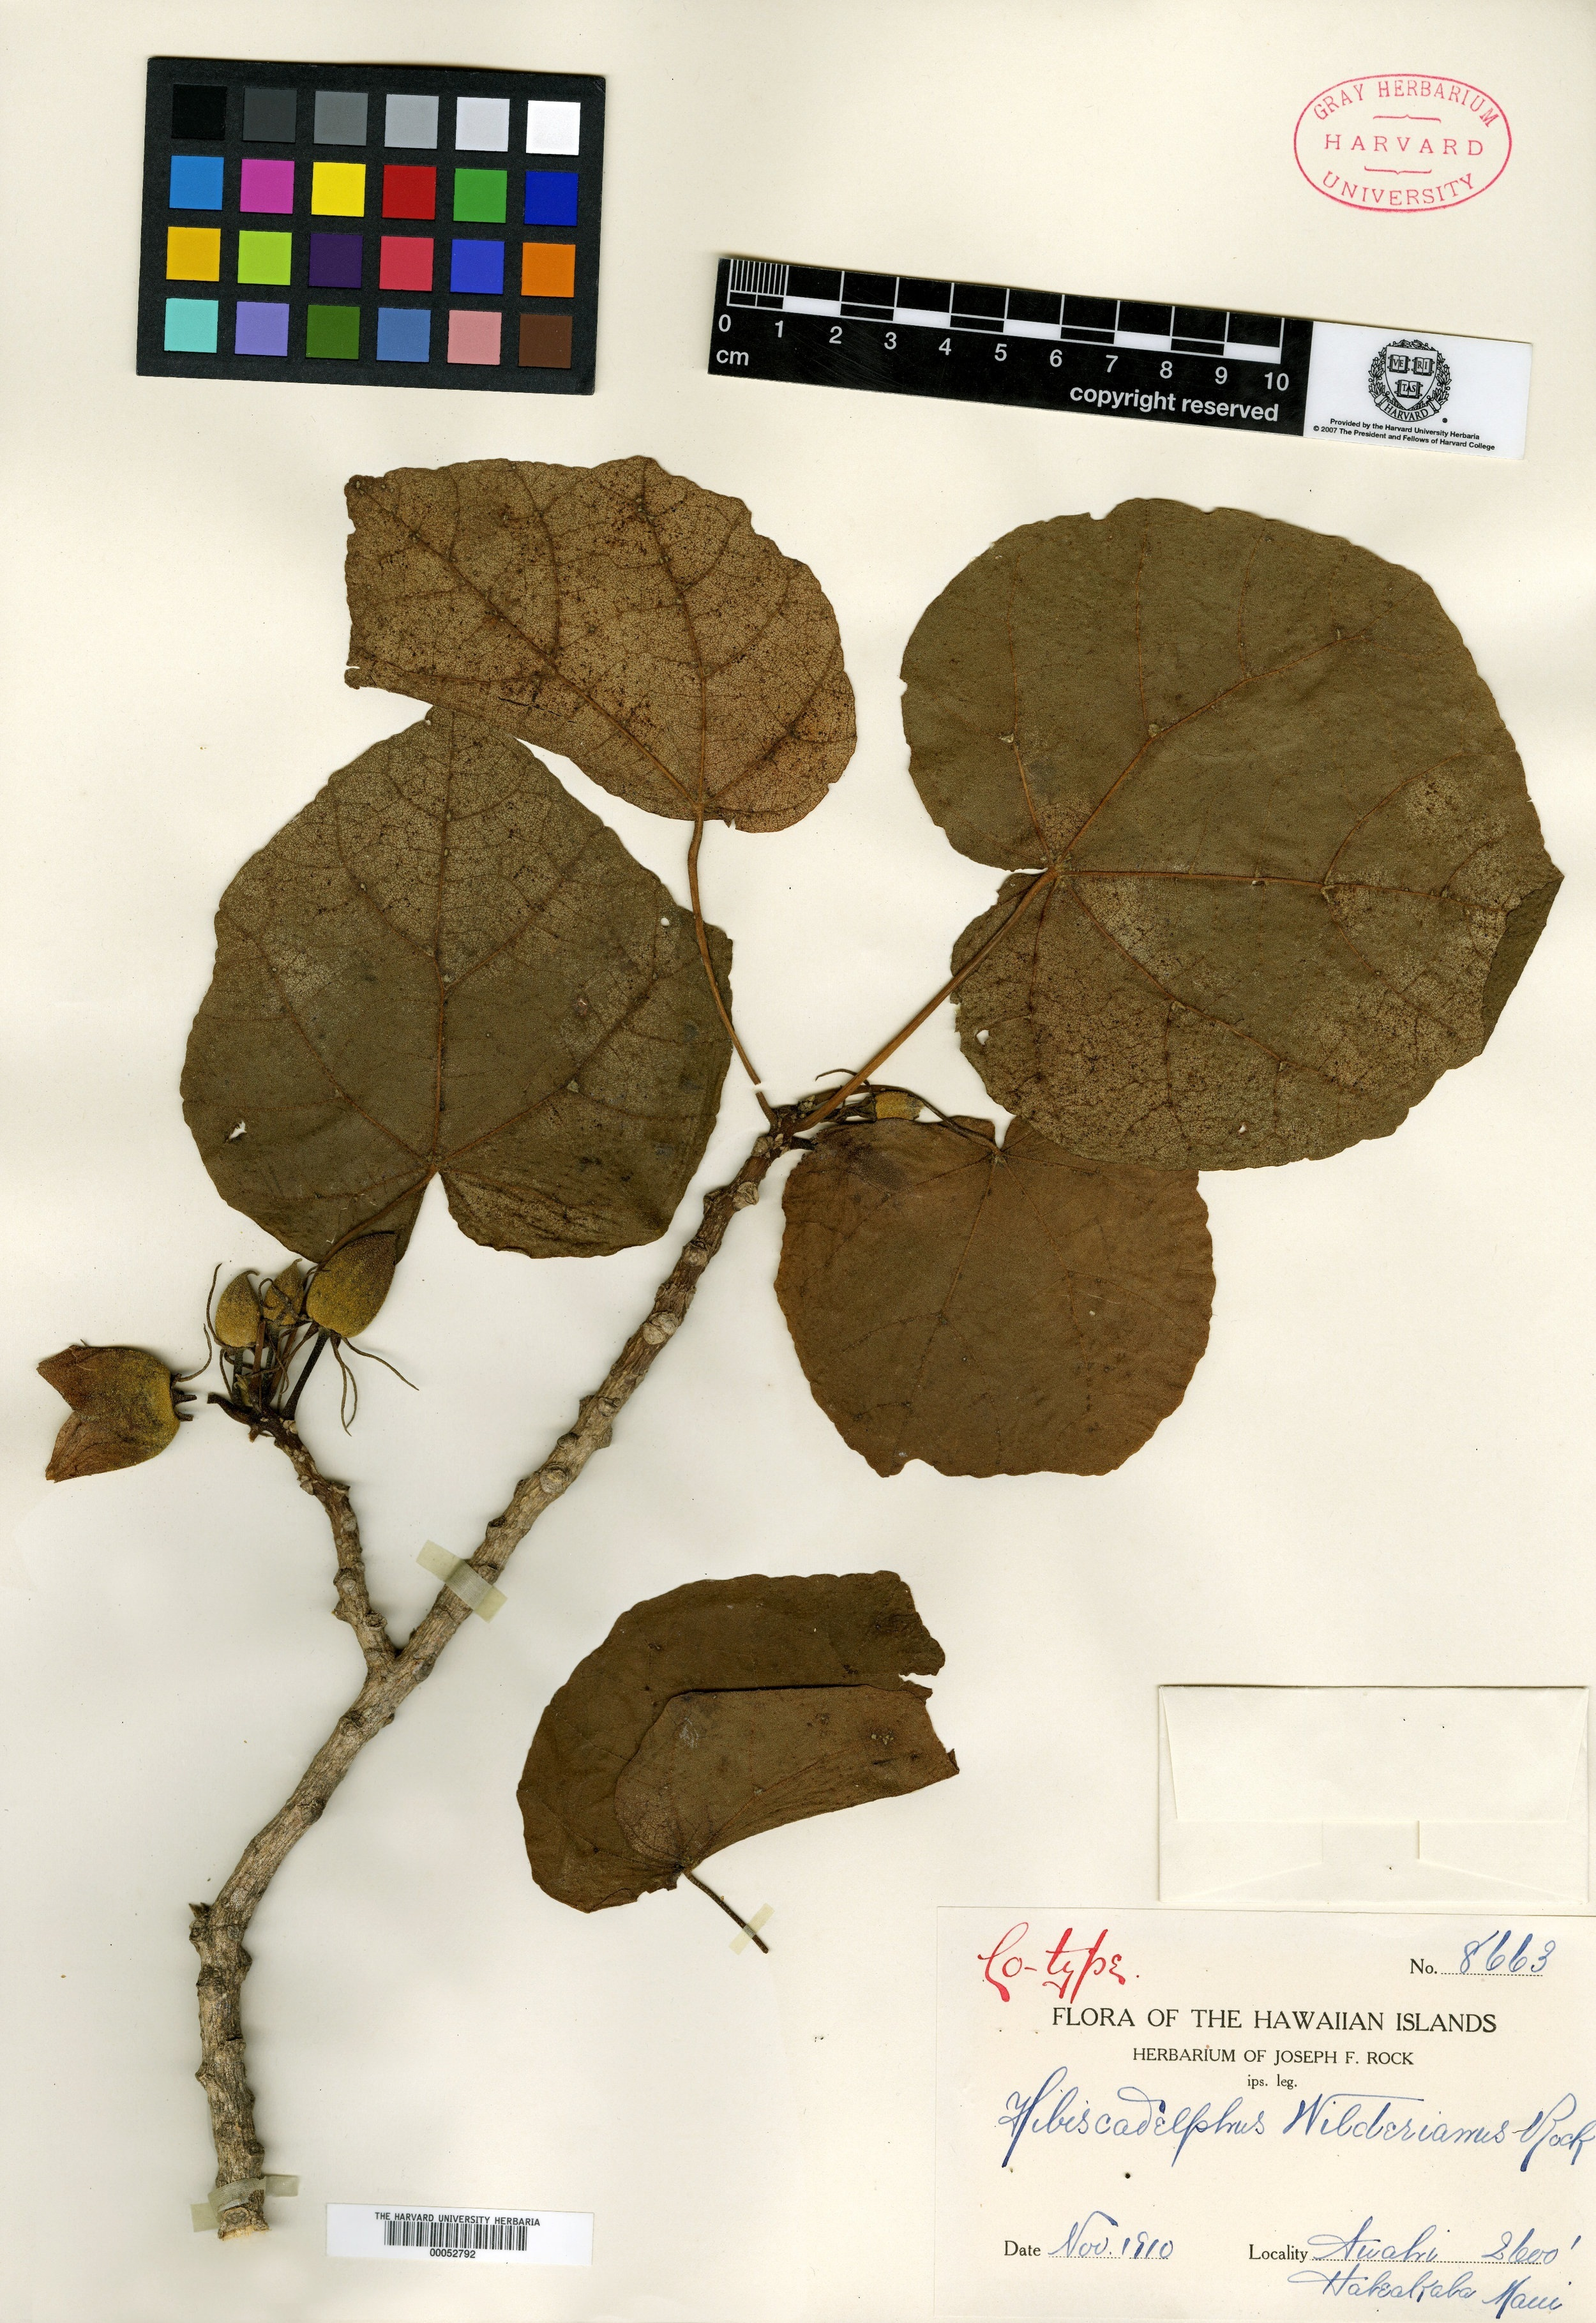 Dried specimen of  Hibiscadelphus wilderianus  Rock, collected by Gerrit P. Wilder on Maui Island, Hawaii in 1910. Courtesy Gray Herbarium of Harvard University.